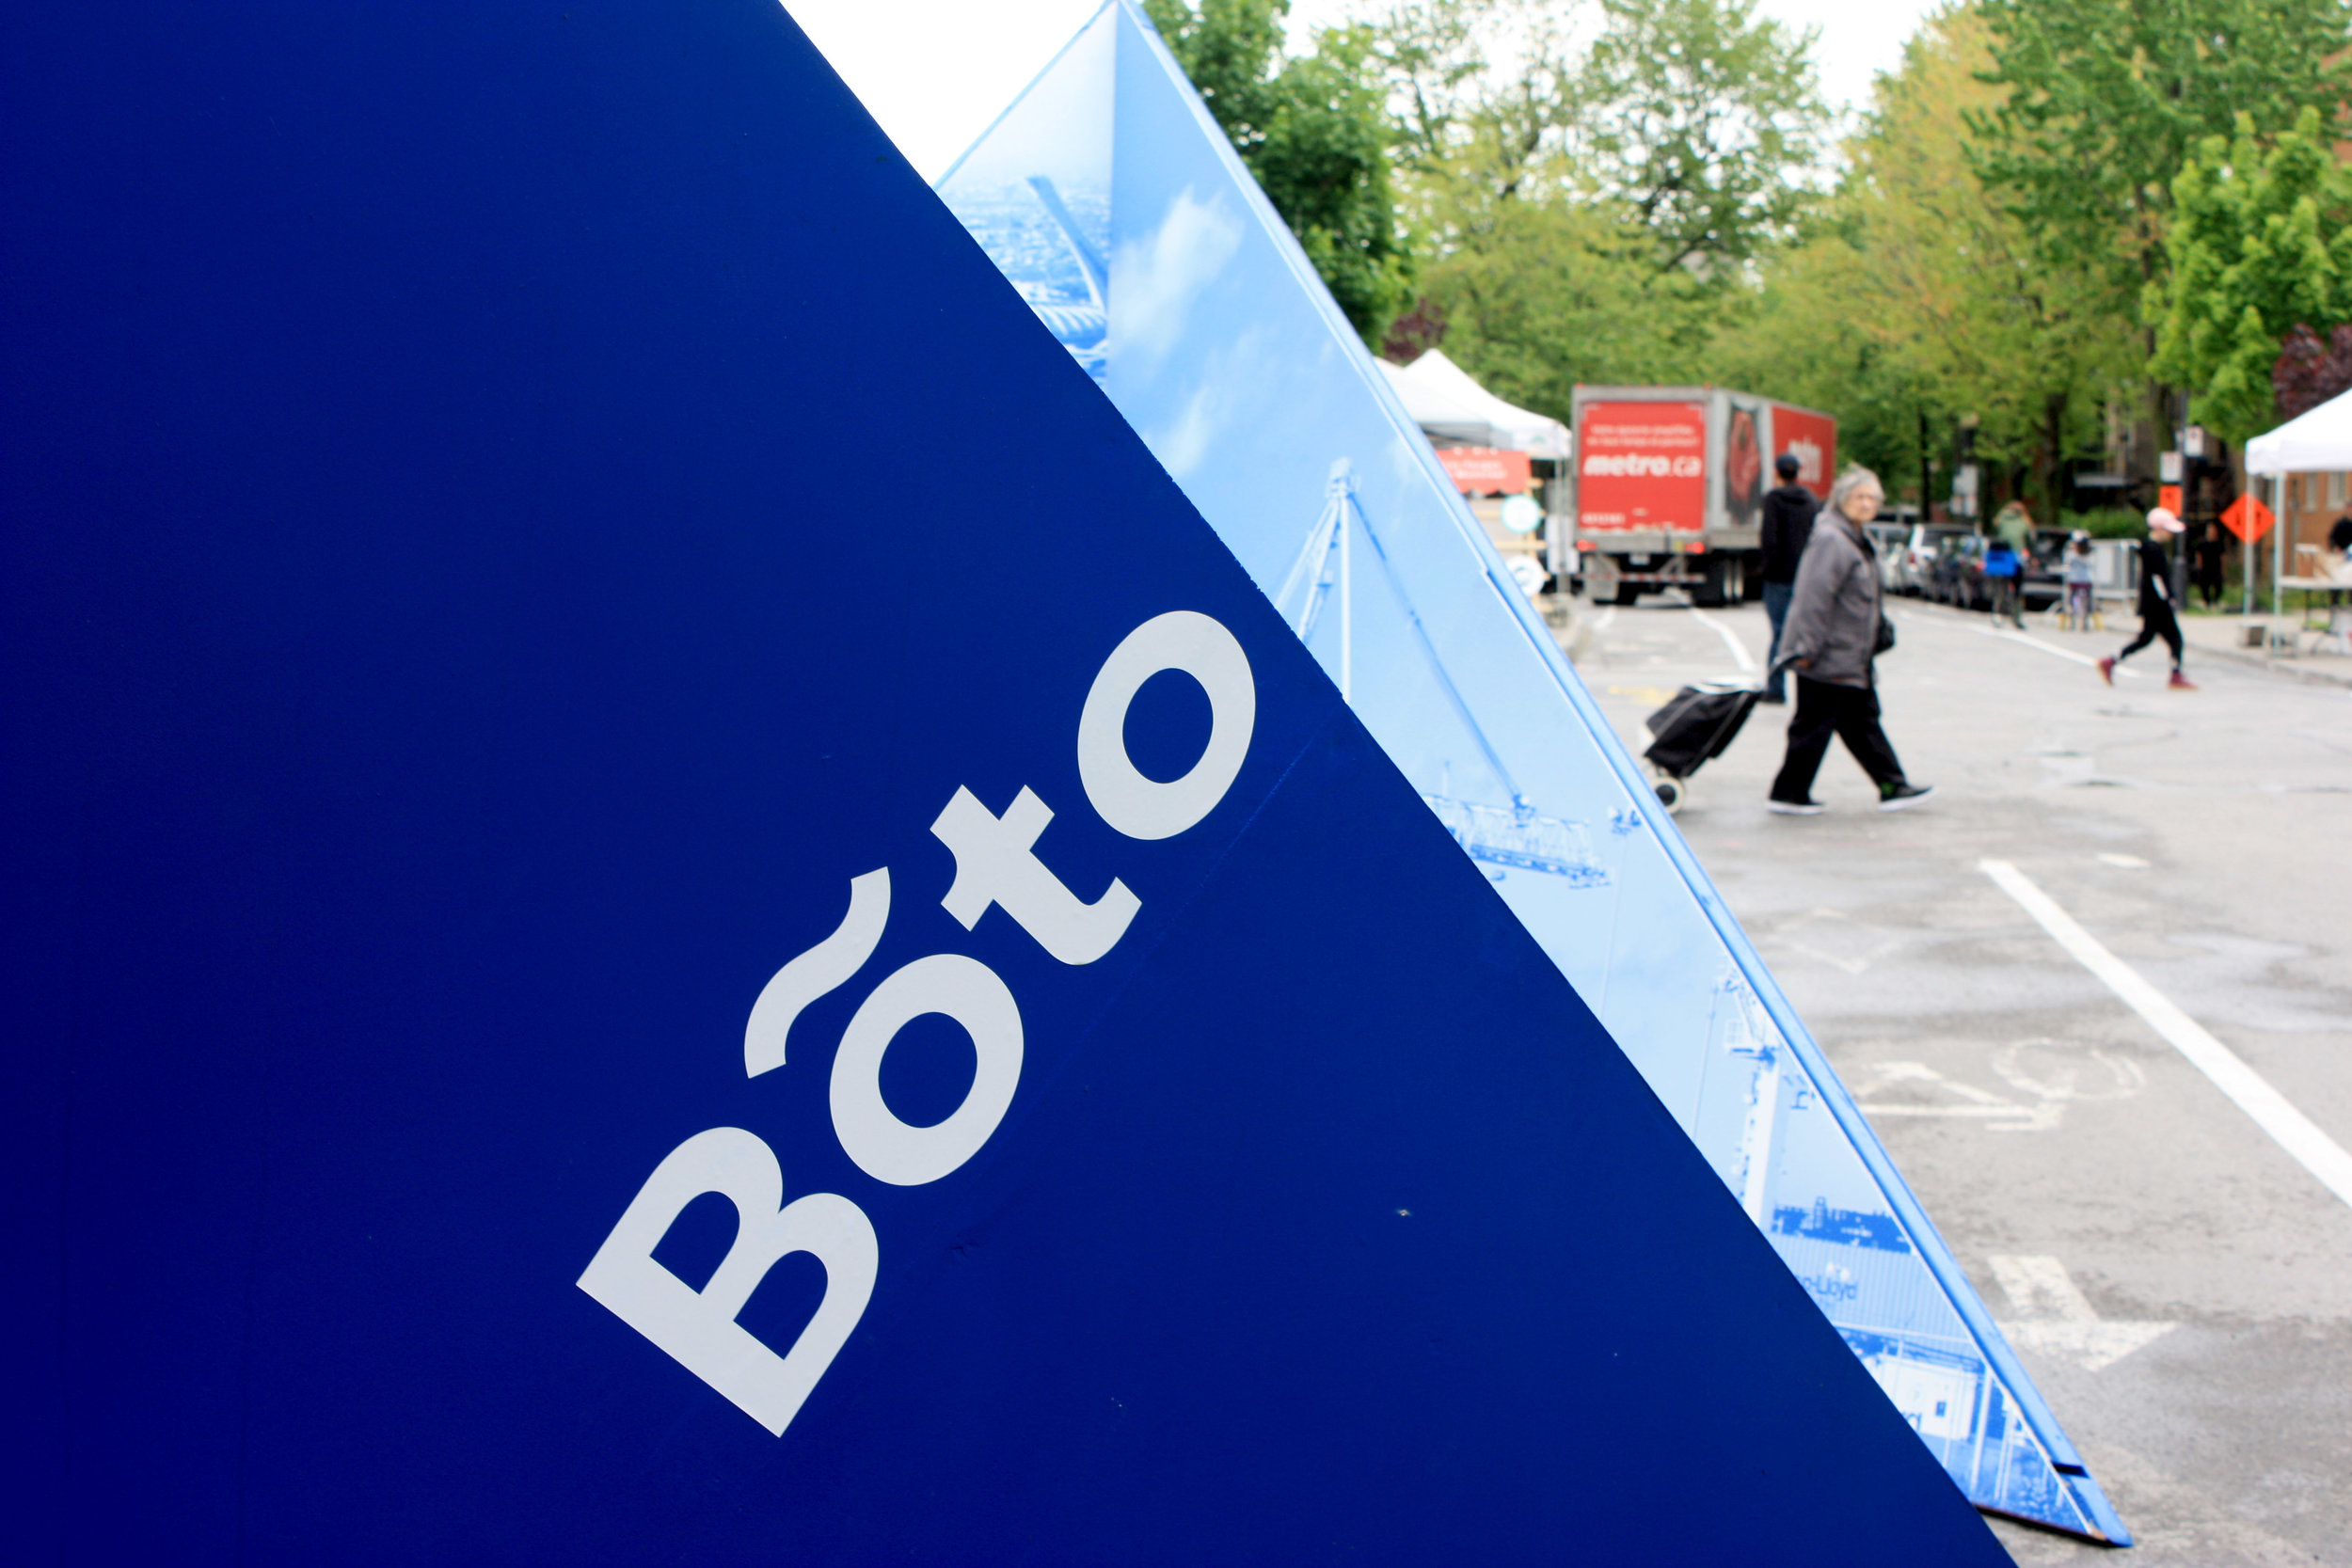 Boto installationMontreal's heritage operation -